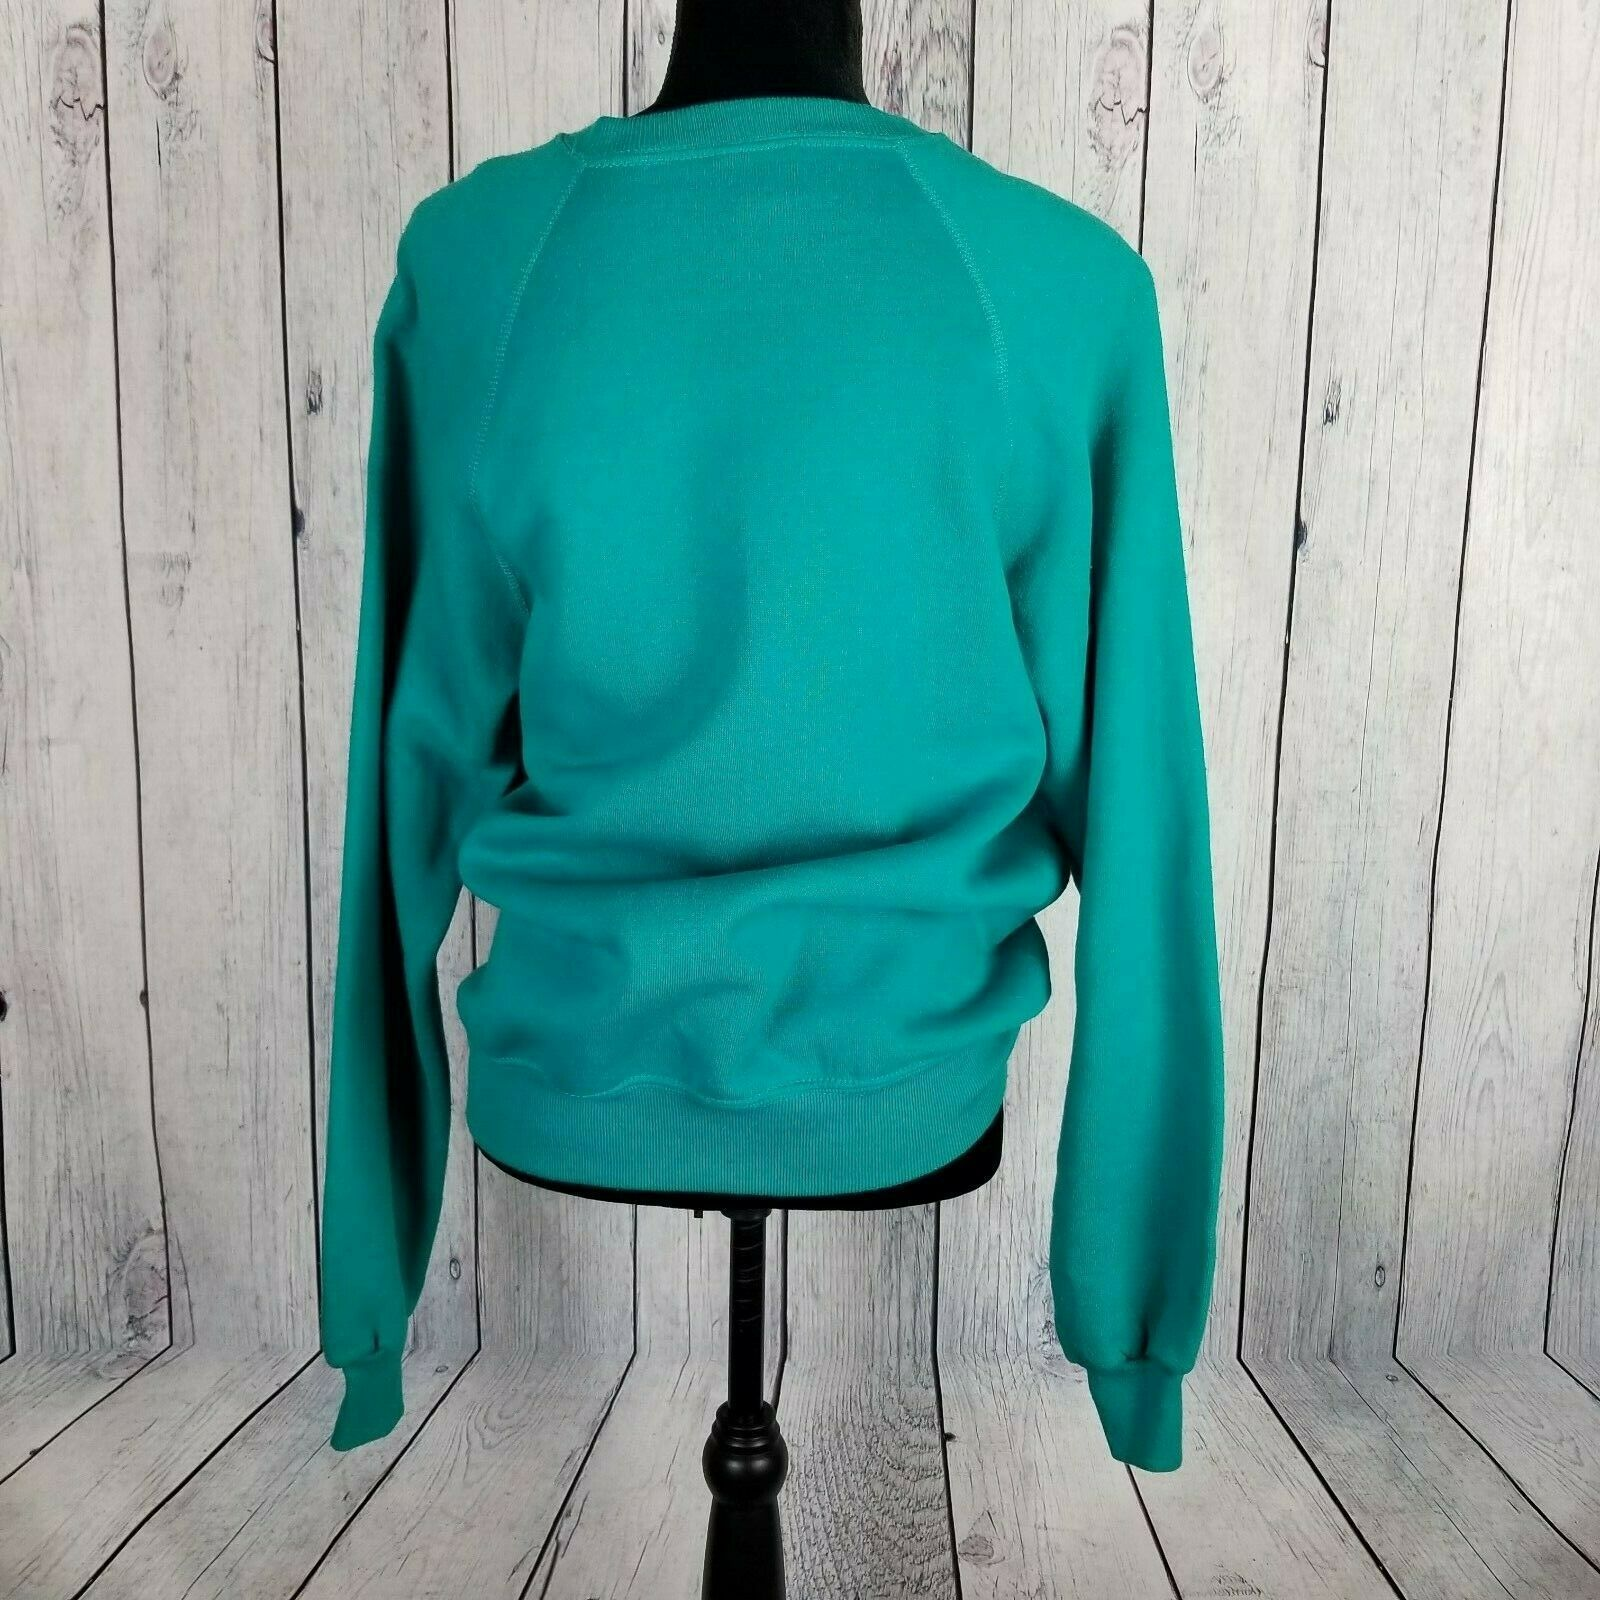 Sturdy Sweats By Lee Teal Textured Sweatshirt Large Vintage Lace Applique image 4